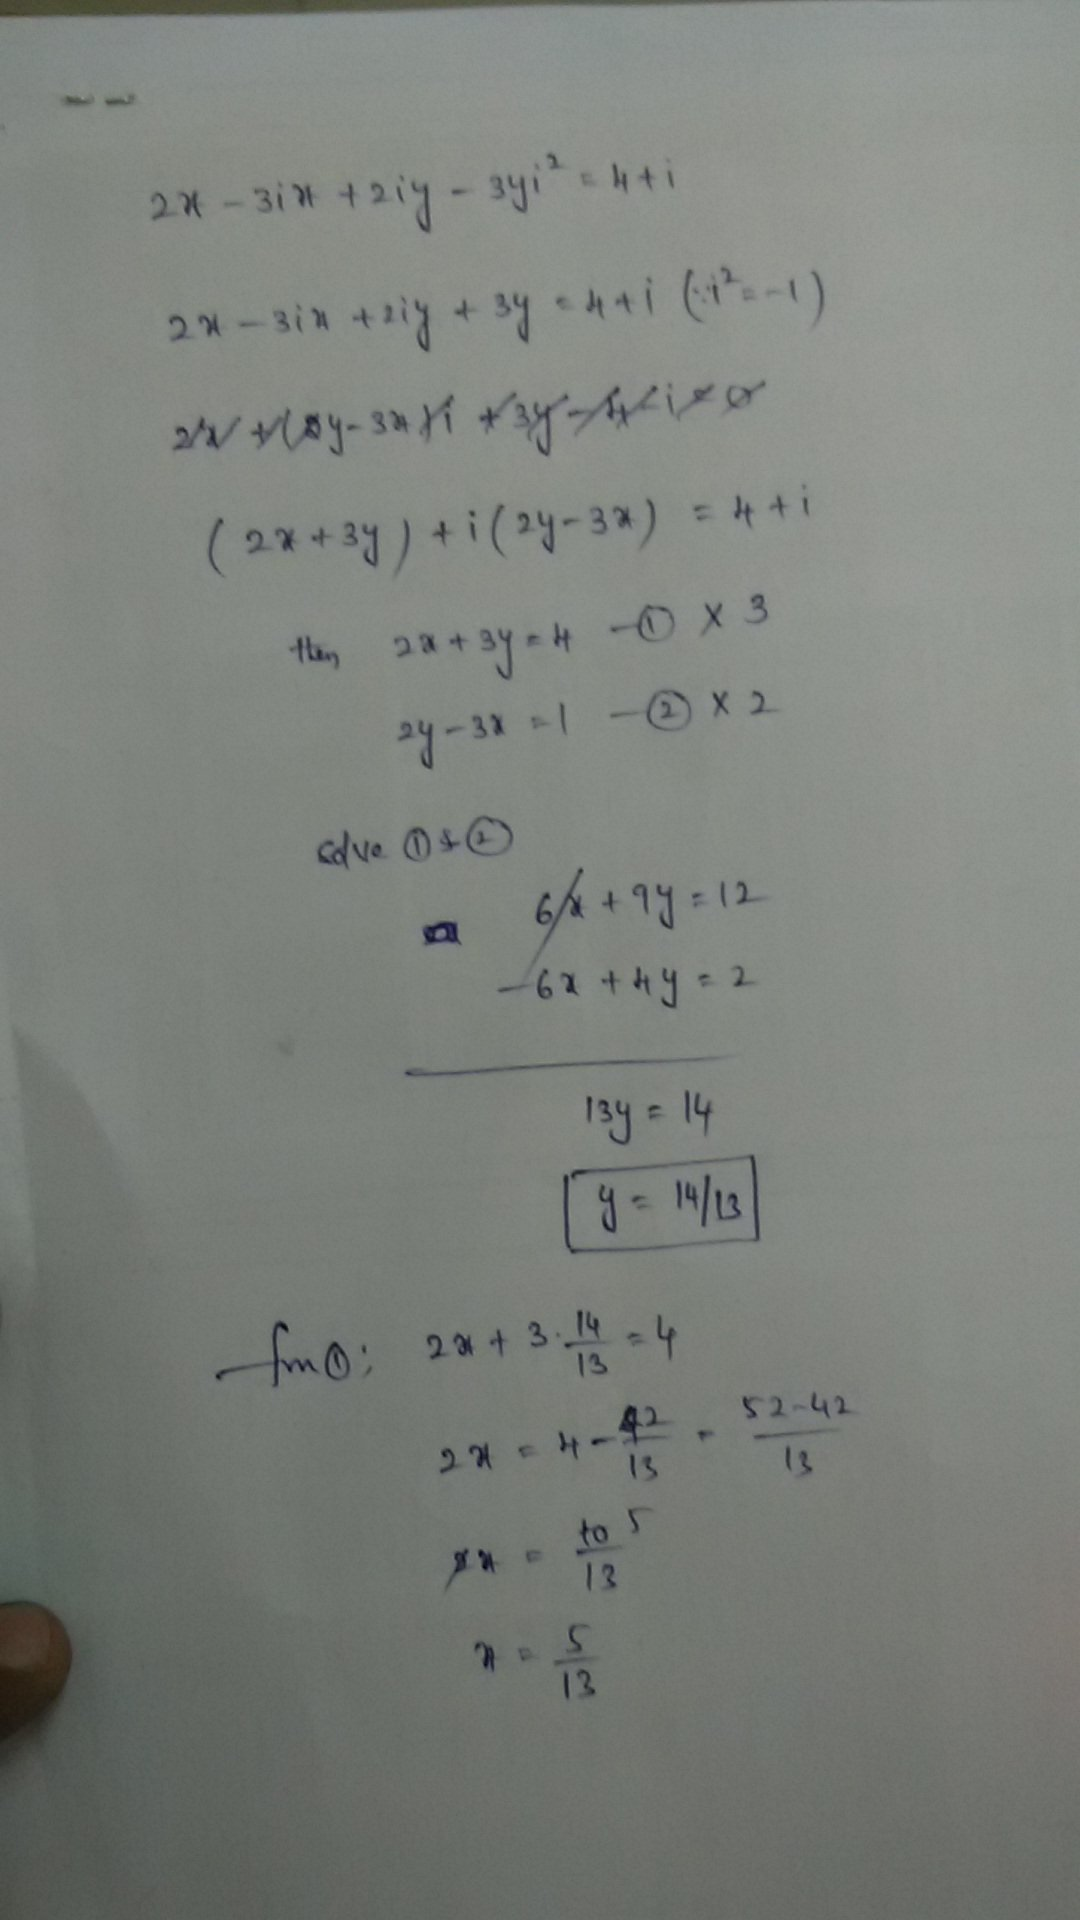 �y�.iy~��[�_findrealvalueofxandy,if(x+iy)(2-3i)=4+i-Brainly.in